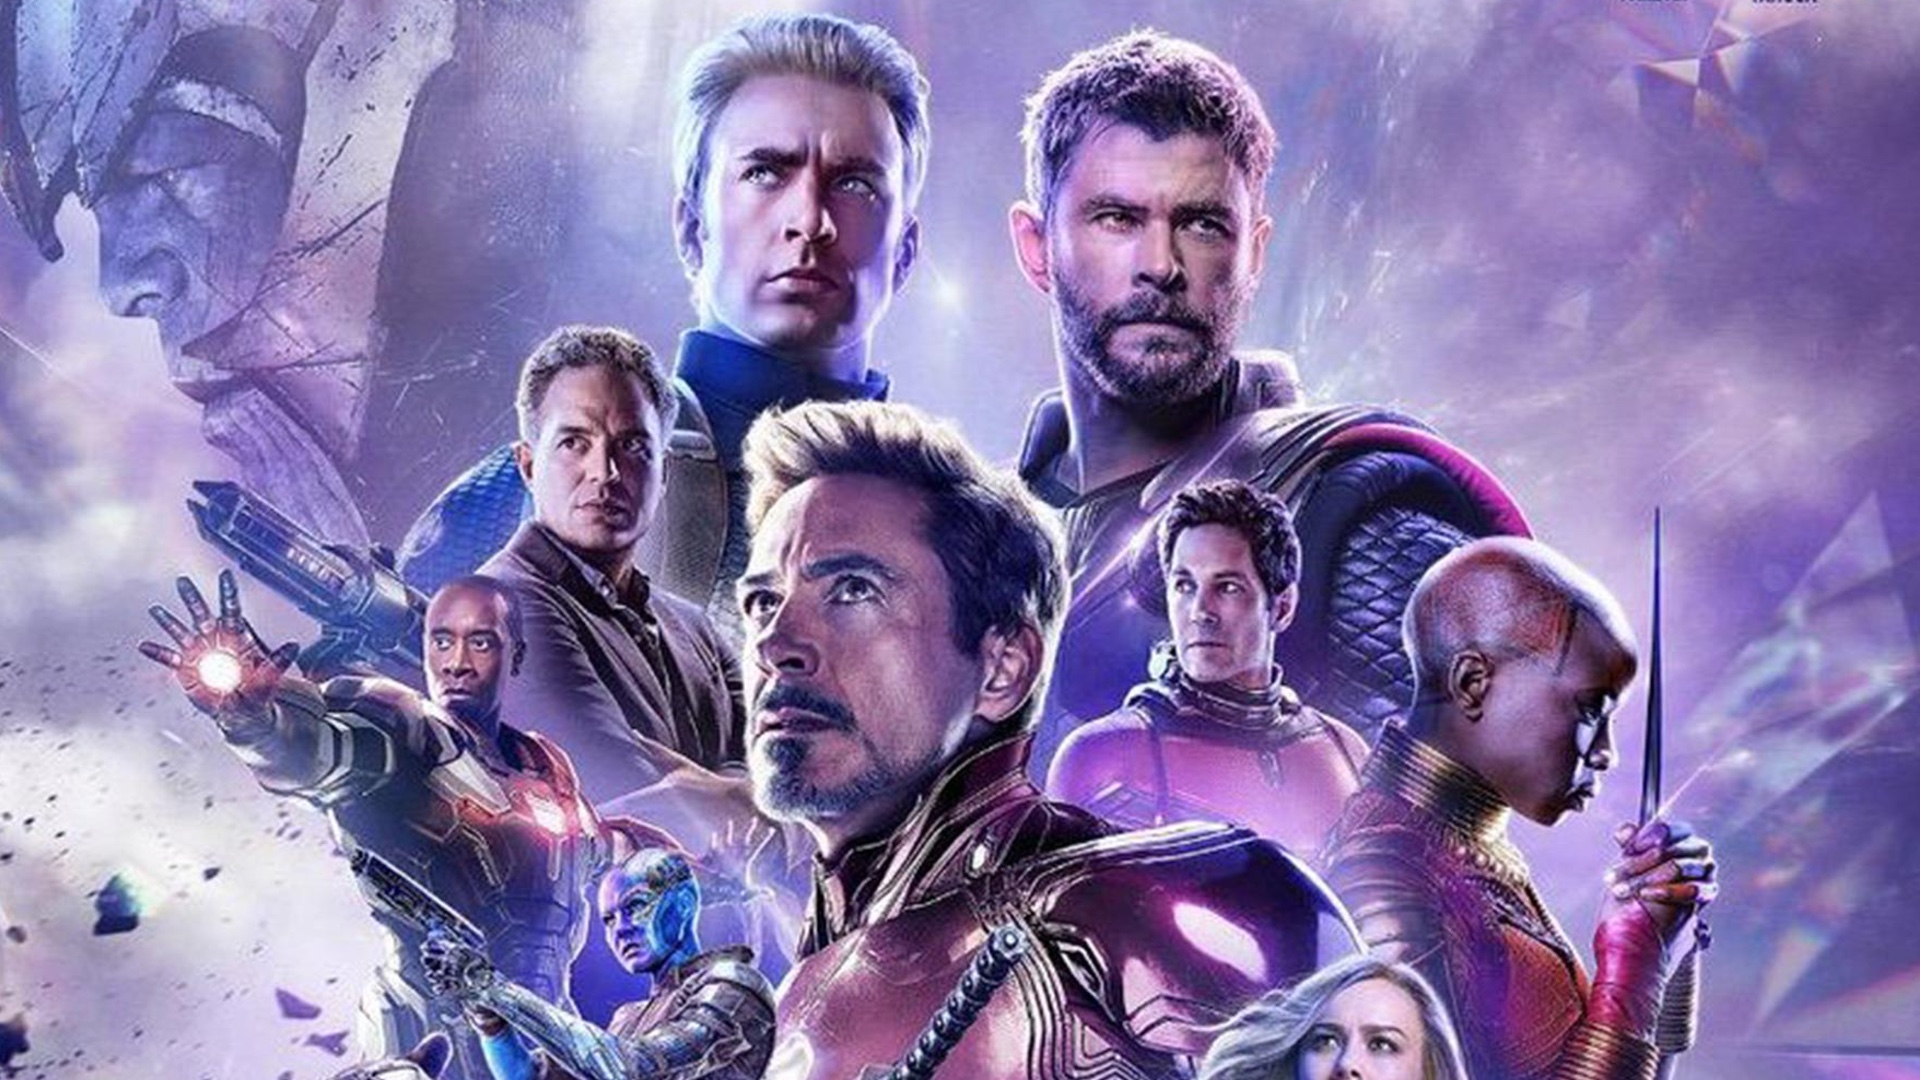 new-avengers-endgame-footage-was-screened-at-comiccon-and-the-heroes-are-racing-to-thanos-social.jpg